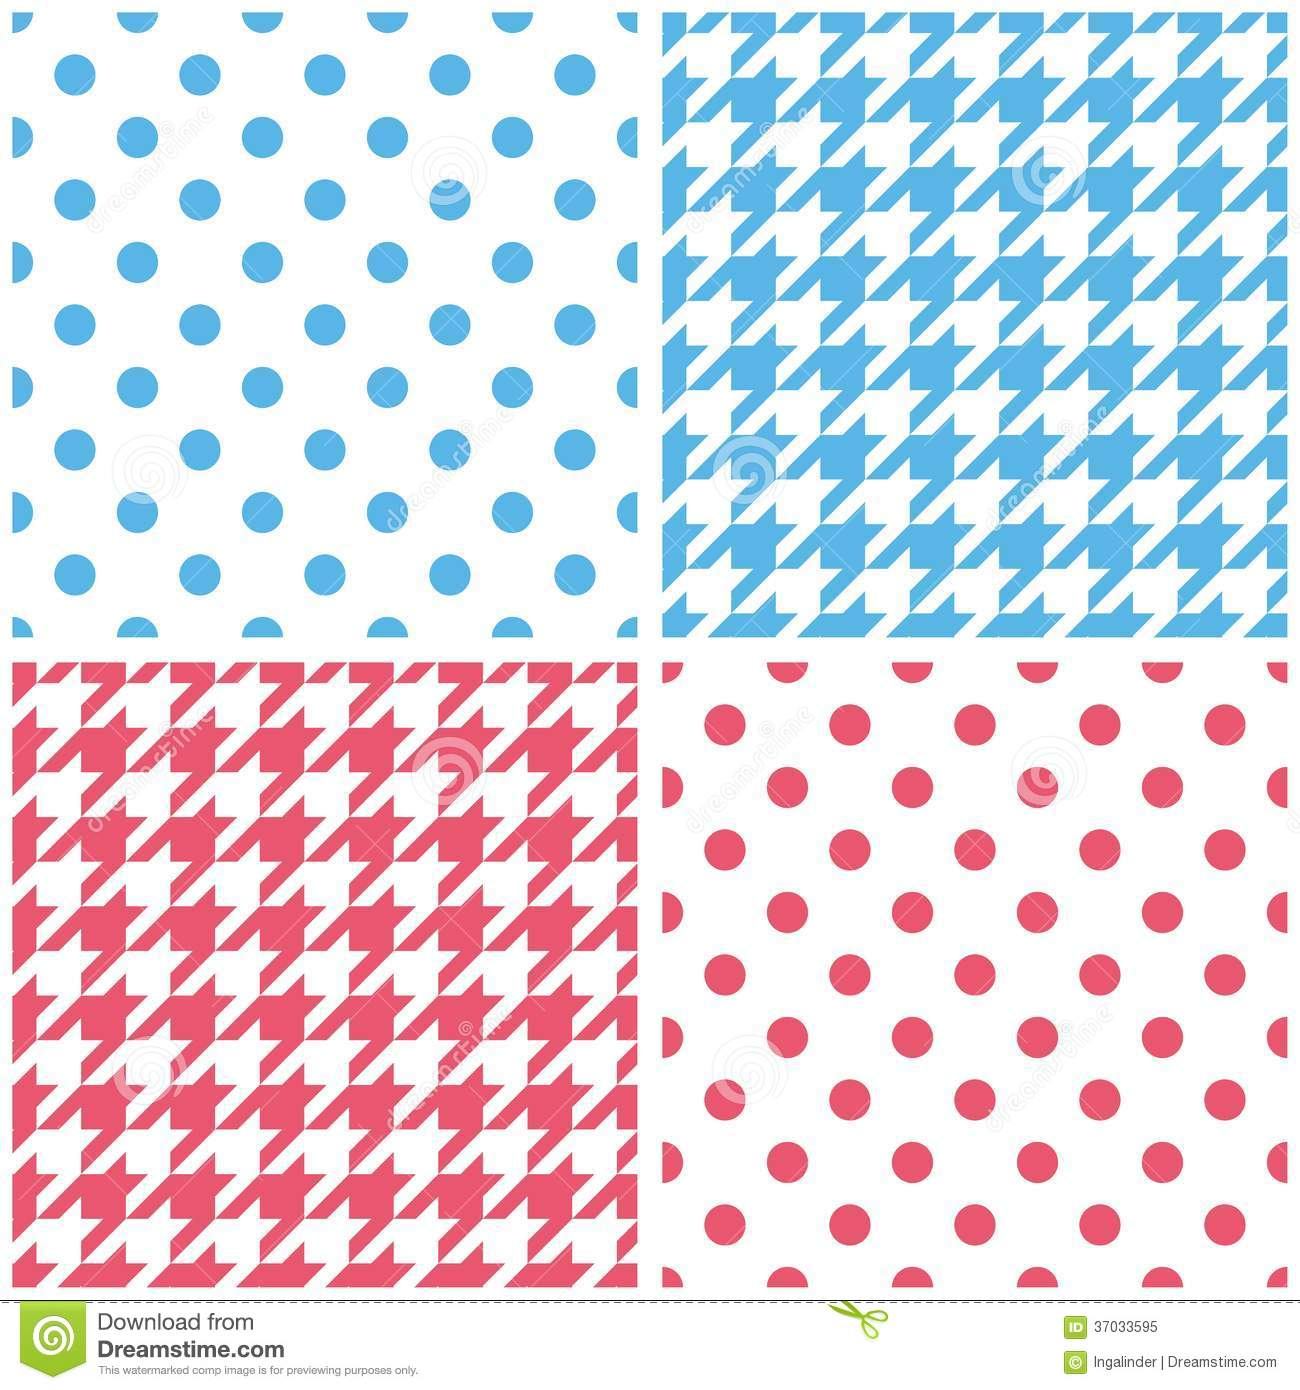 Can I Put Wallpaper On Top Of Wallpaper: Blue, White And Pink Vector Background Set Stock Vector